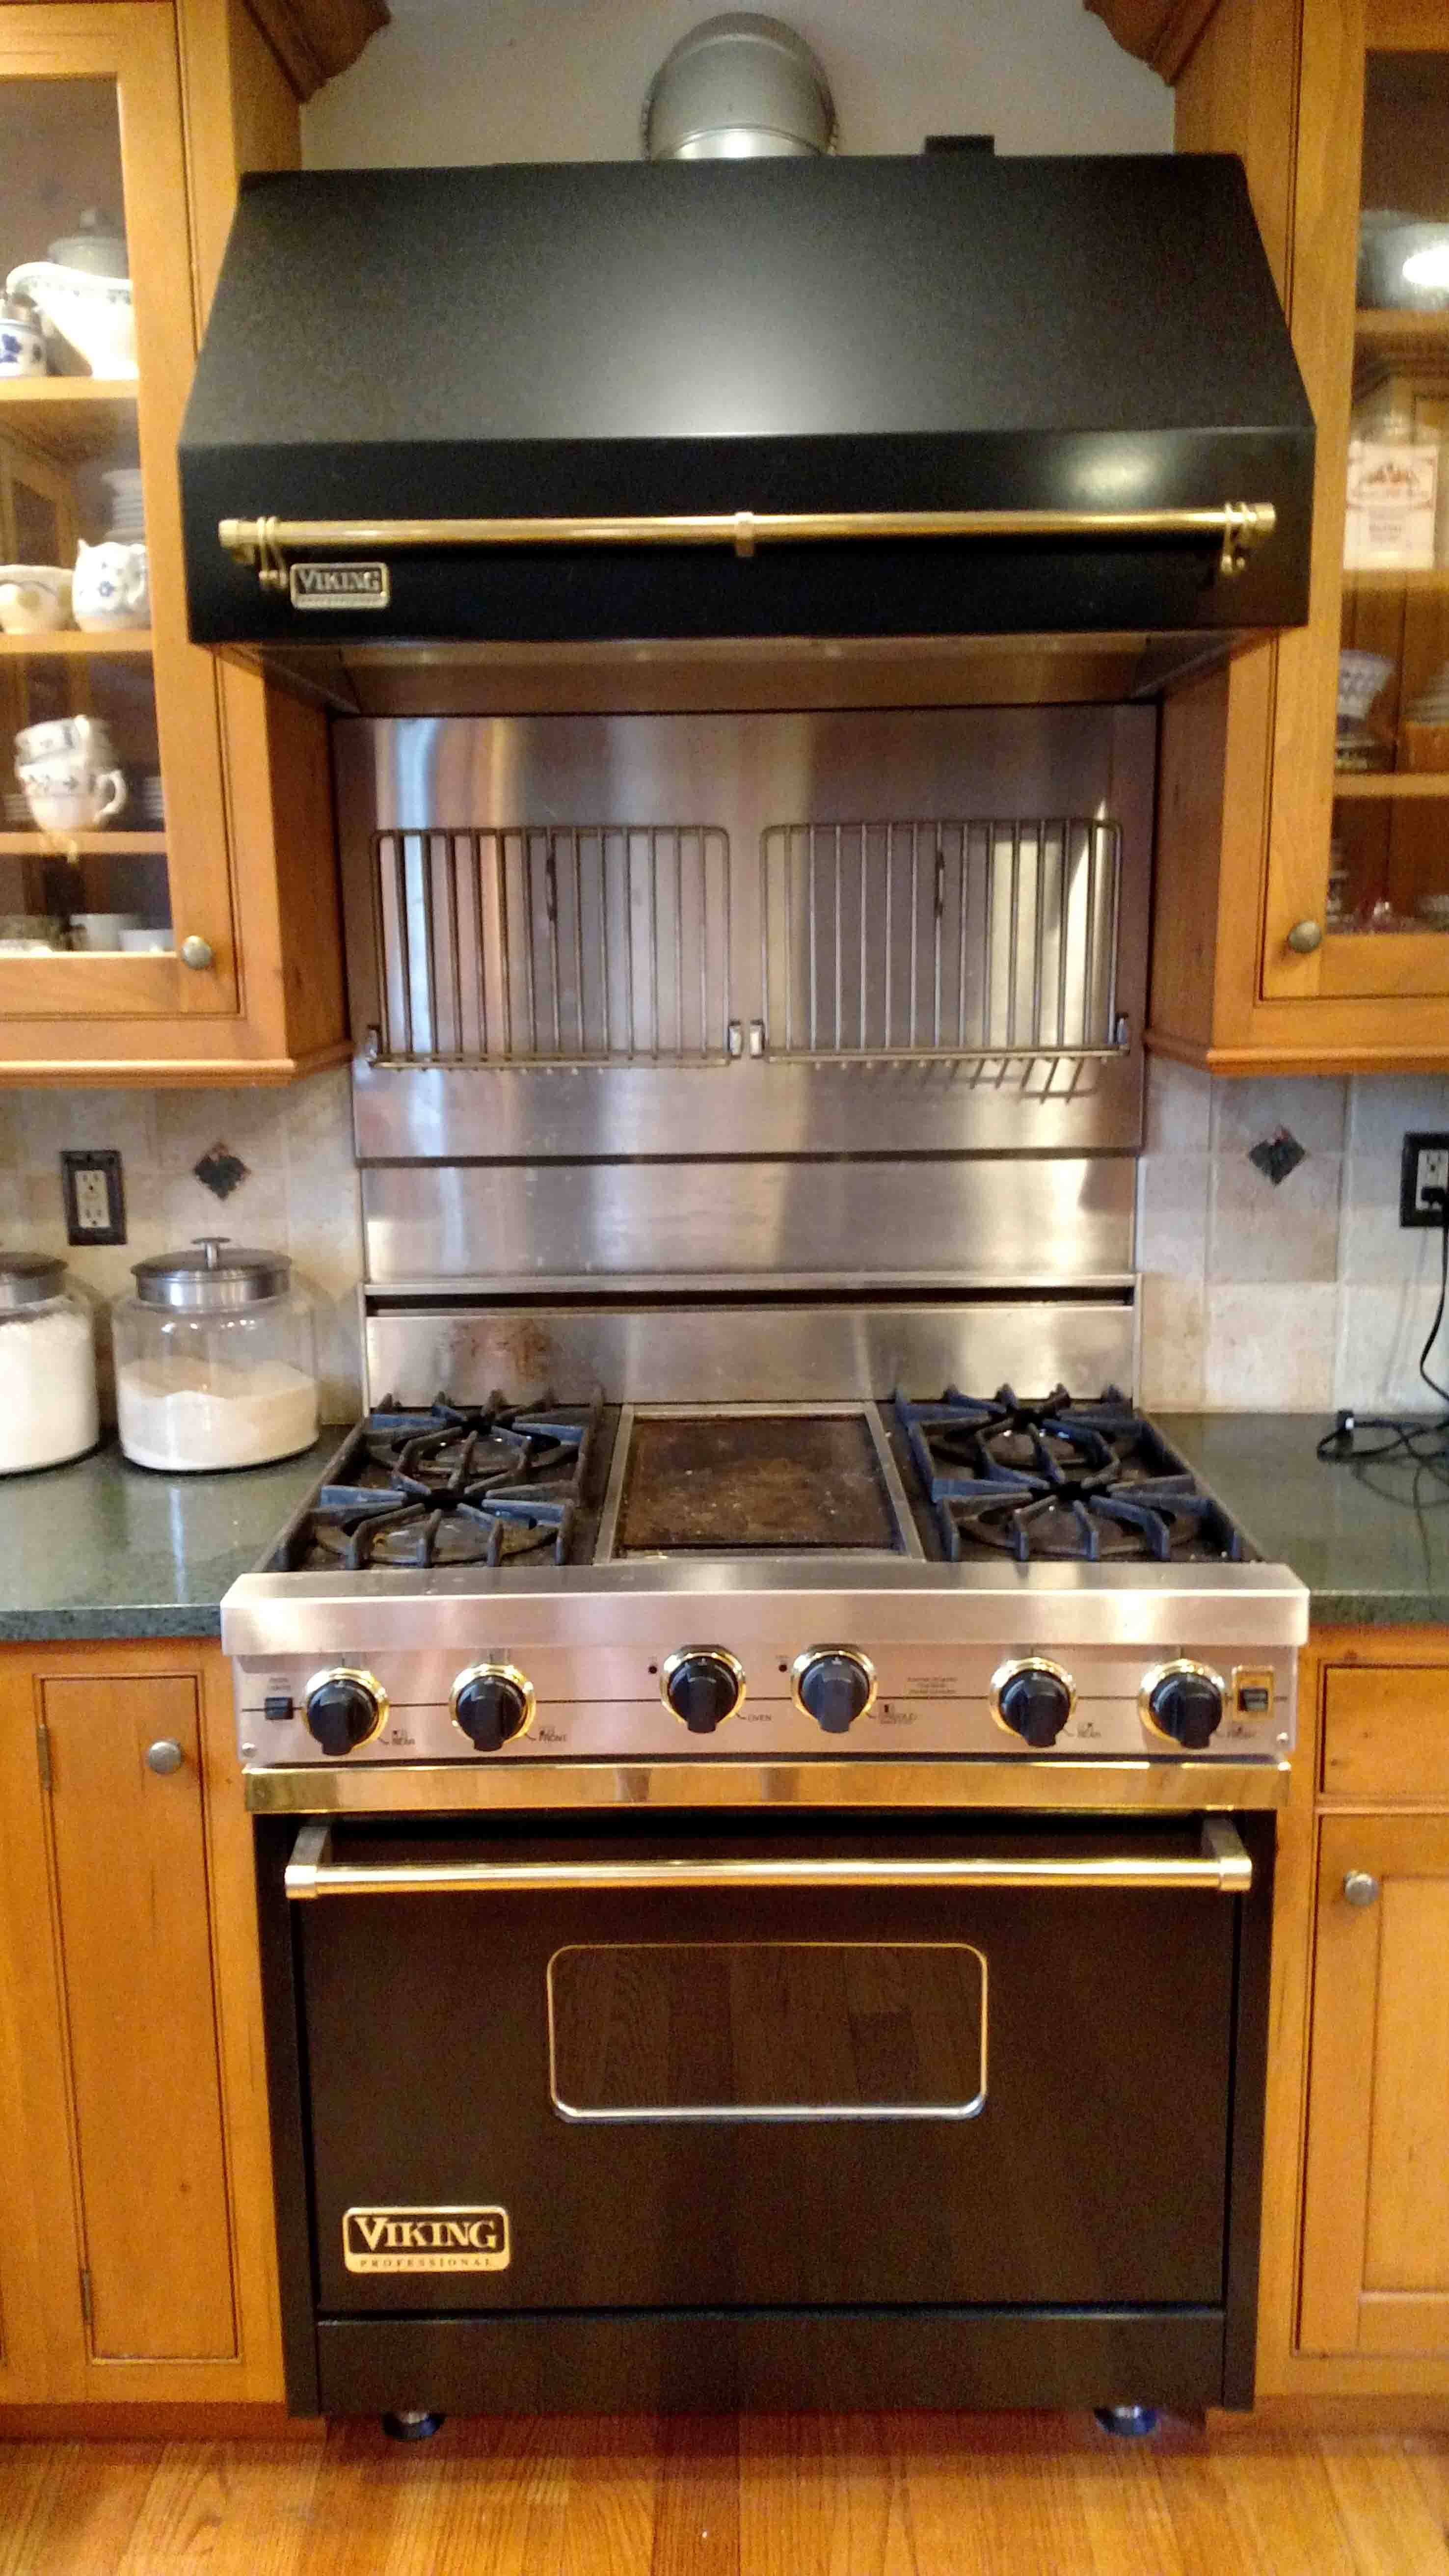 How To Restore An Older Oven And Cooktop To Like New Condition The Washington Post